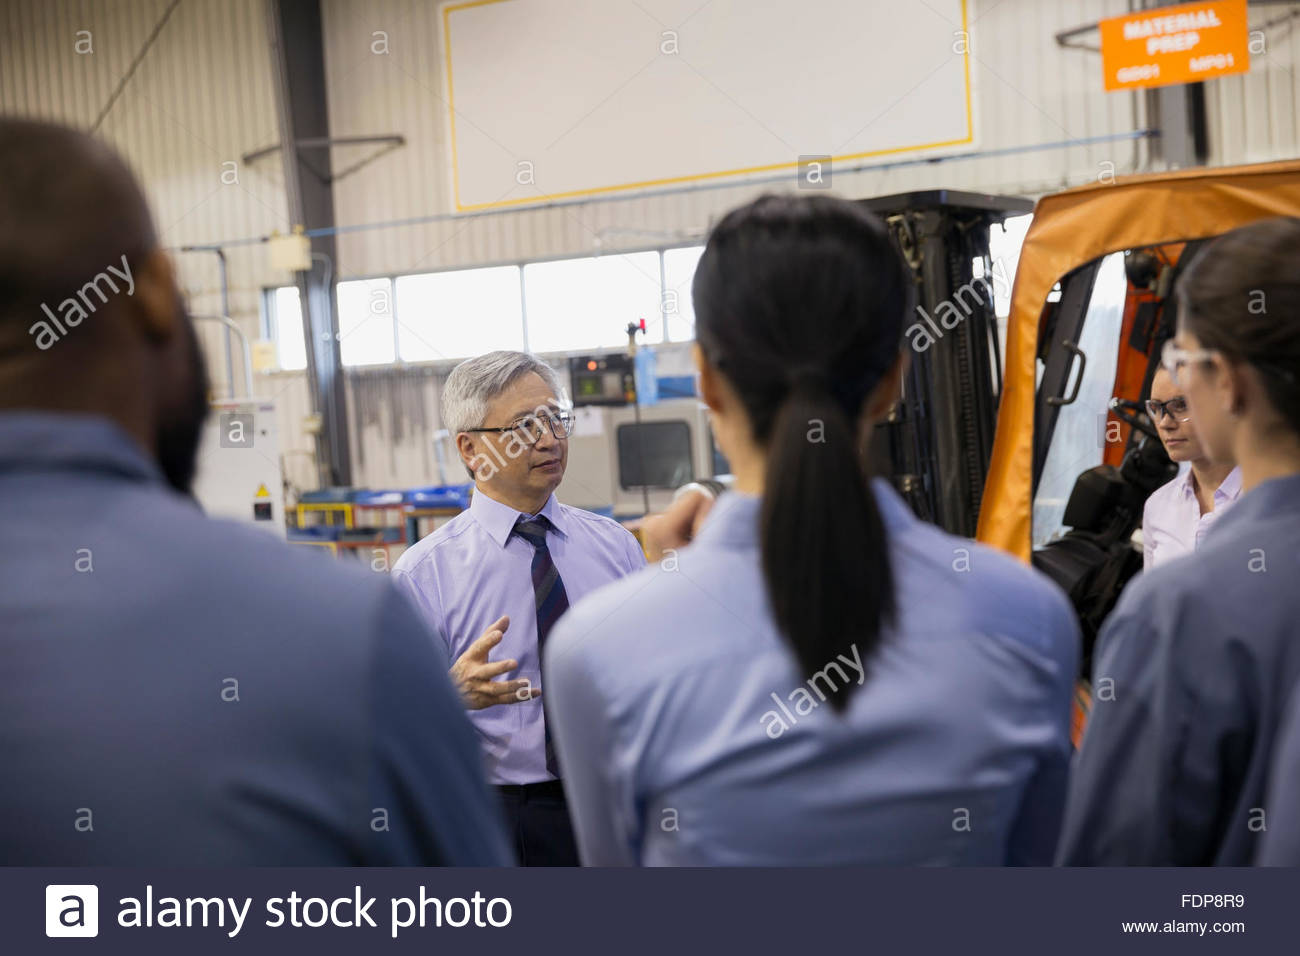 Manager leading team meeting in factory - Stock Image